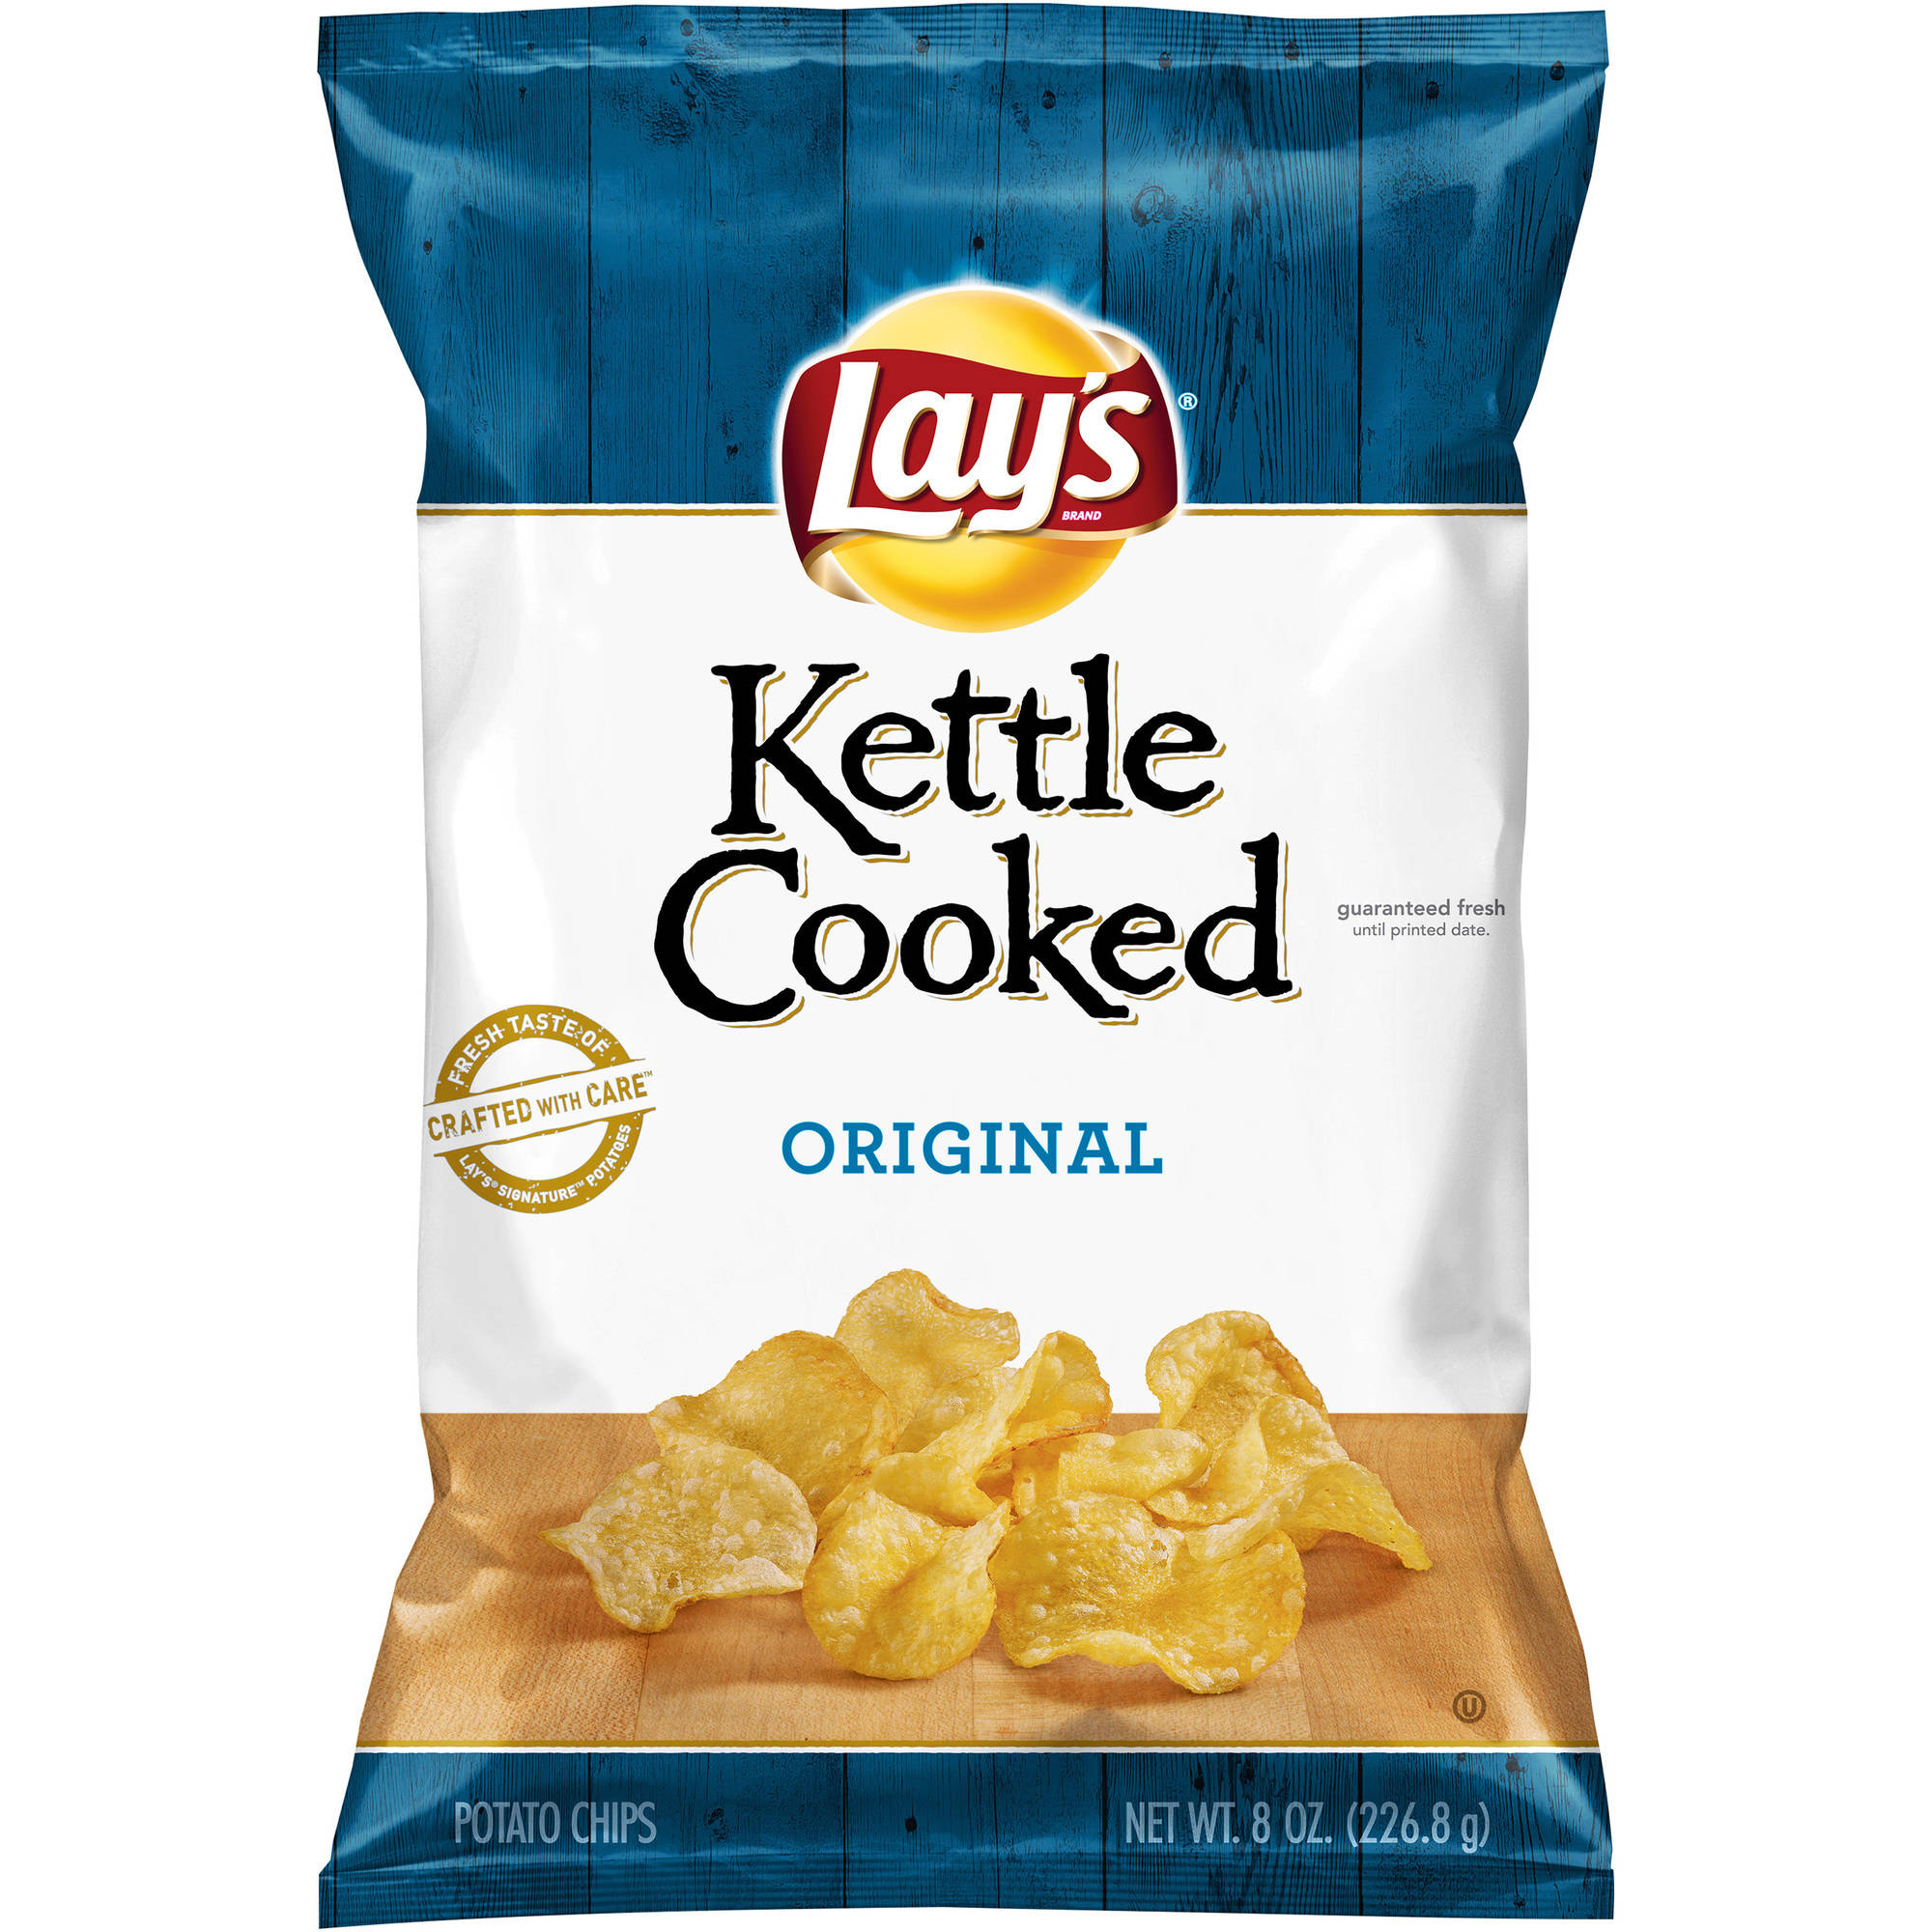 Lay's Kettle Cooked Original Potato Chips, 8 oz